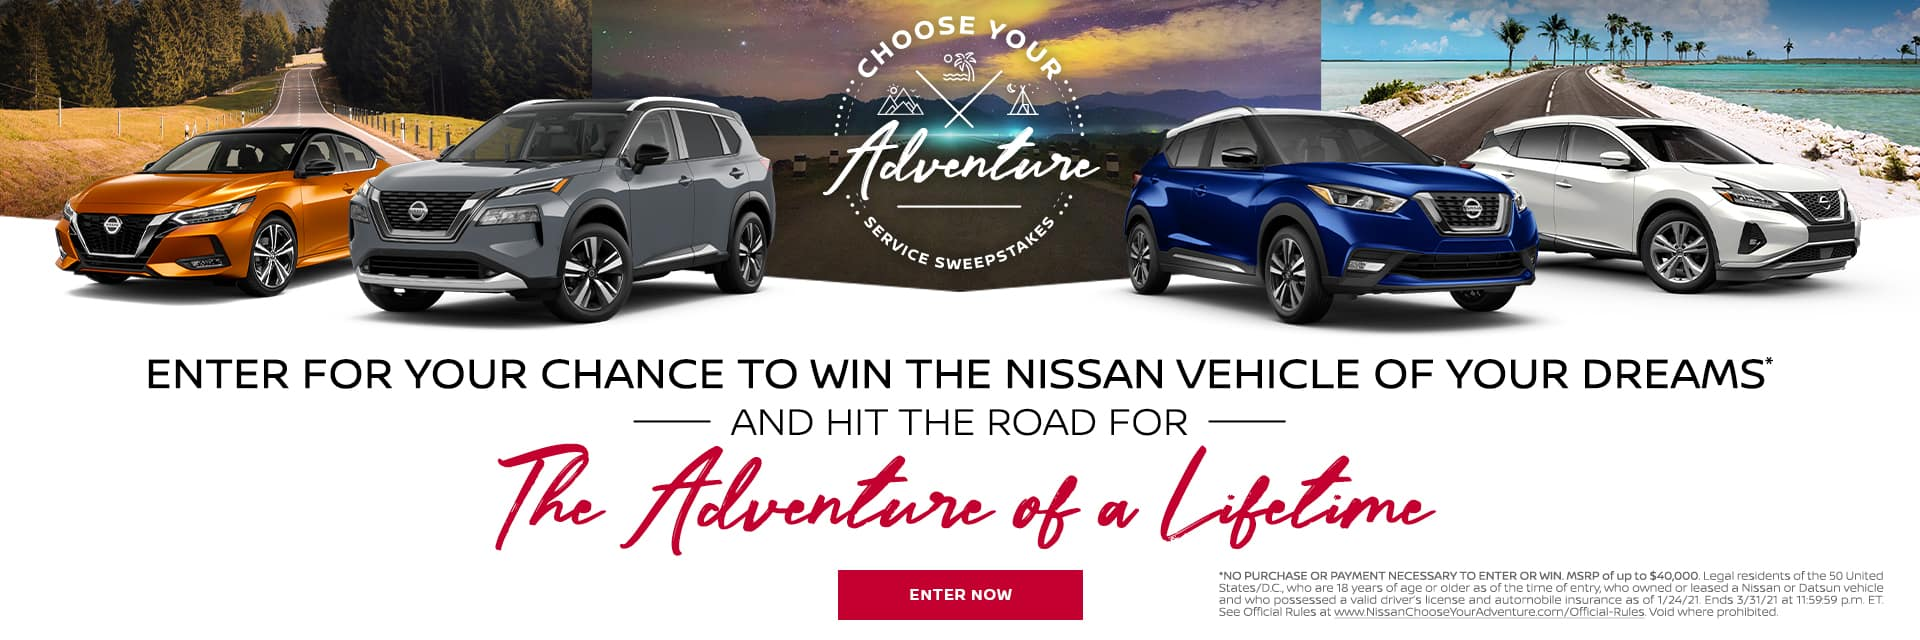 Enter for your chance to wi the Nissan vehicle of your dreams and hit the road for the adventure of a lifetime!